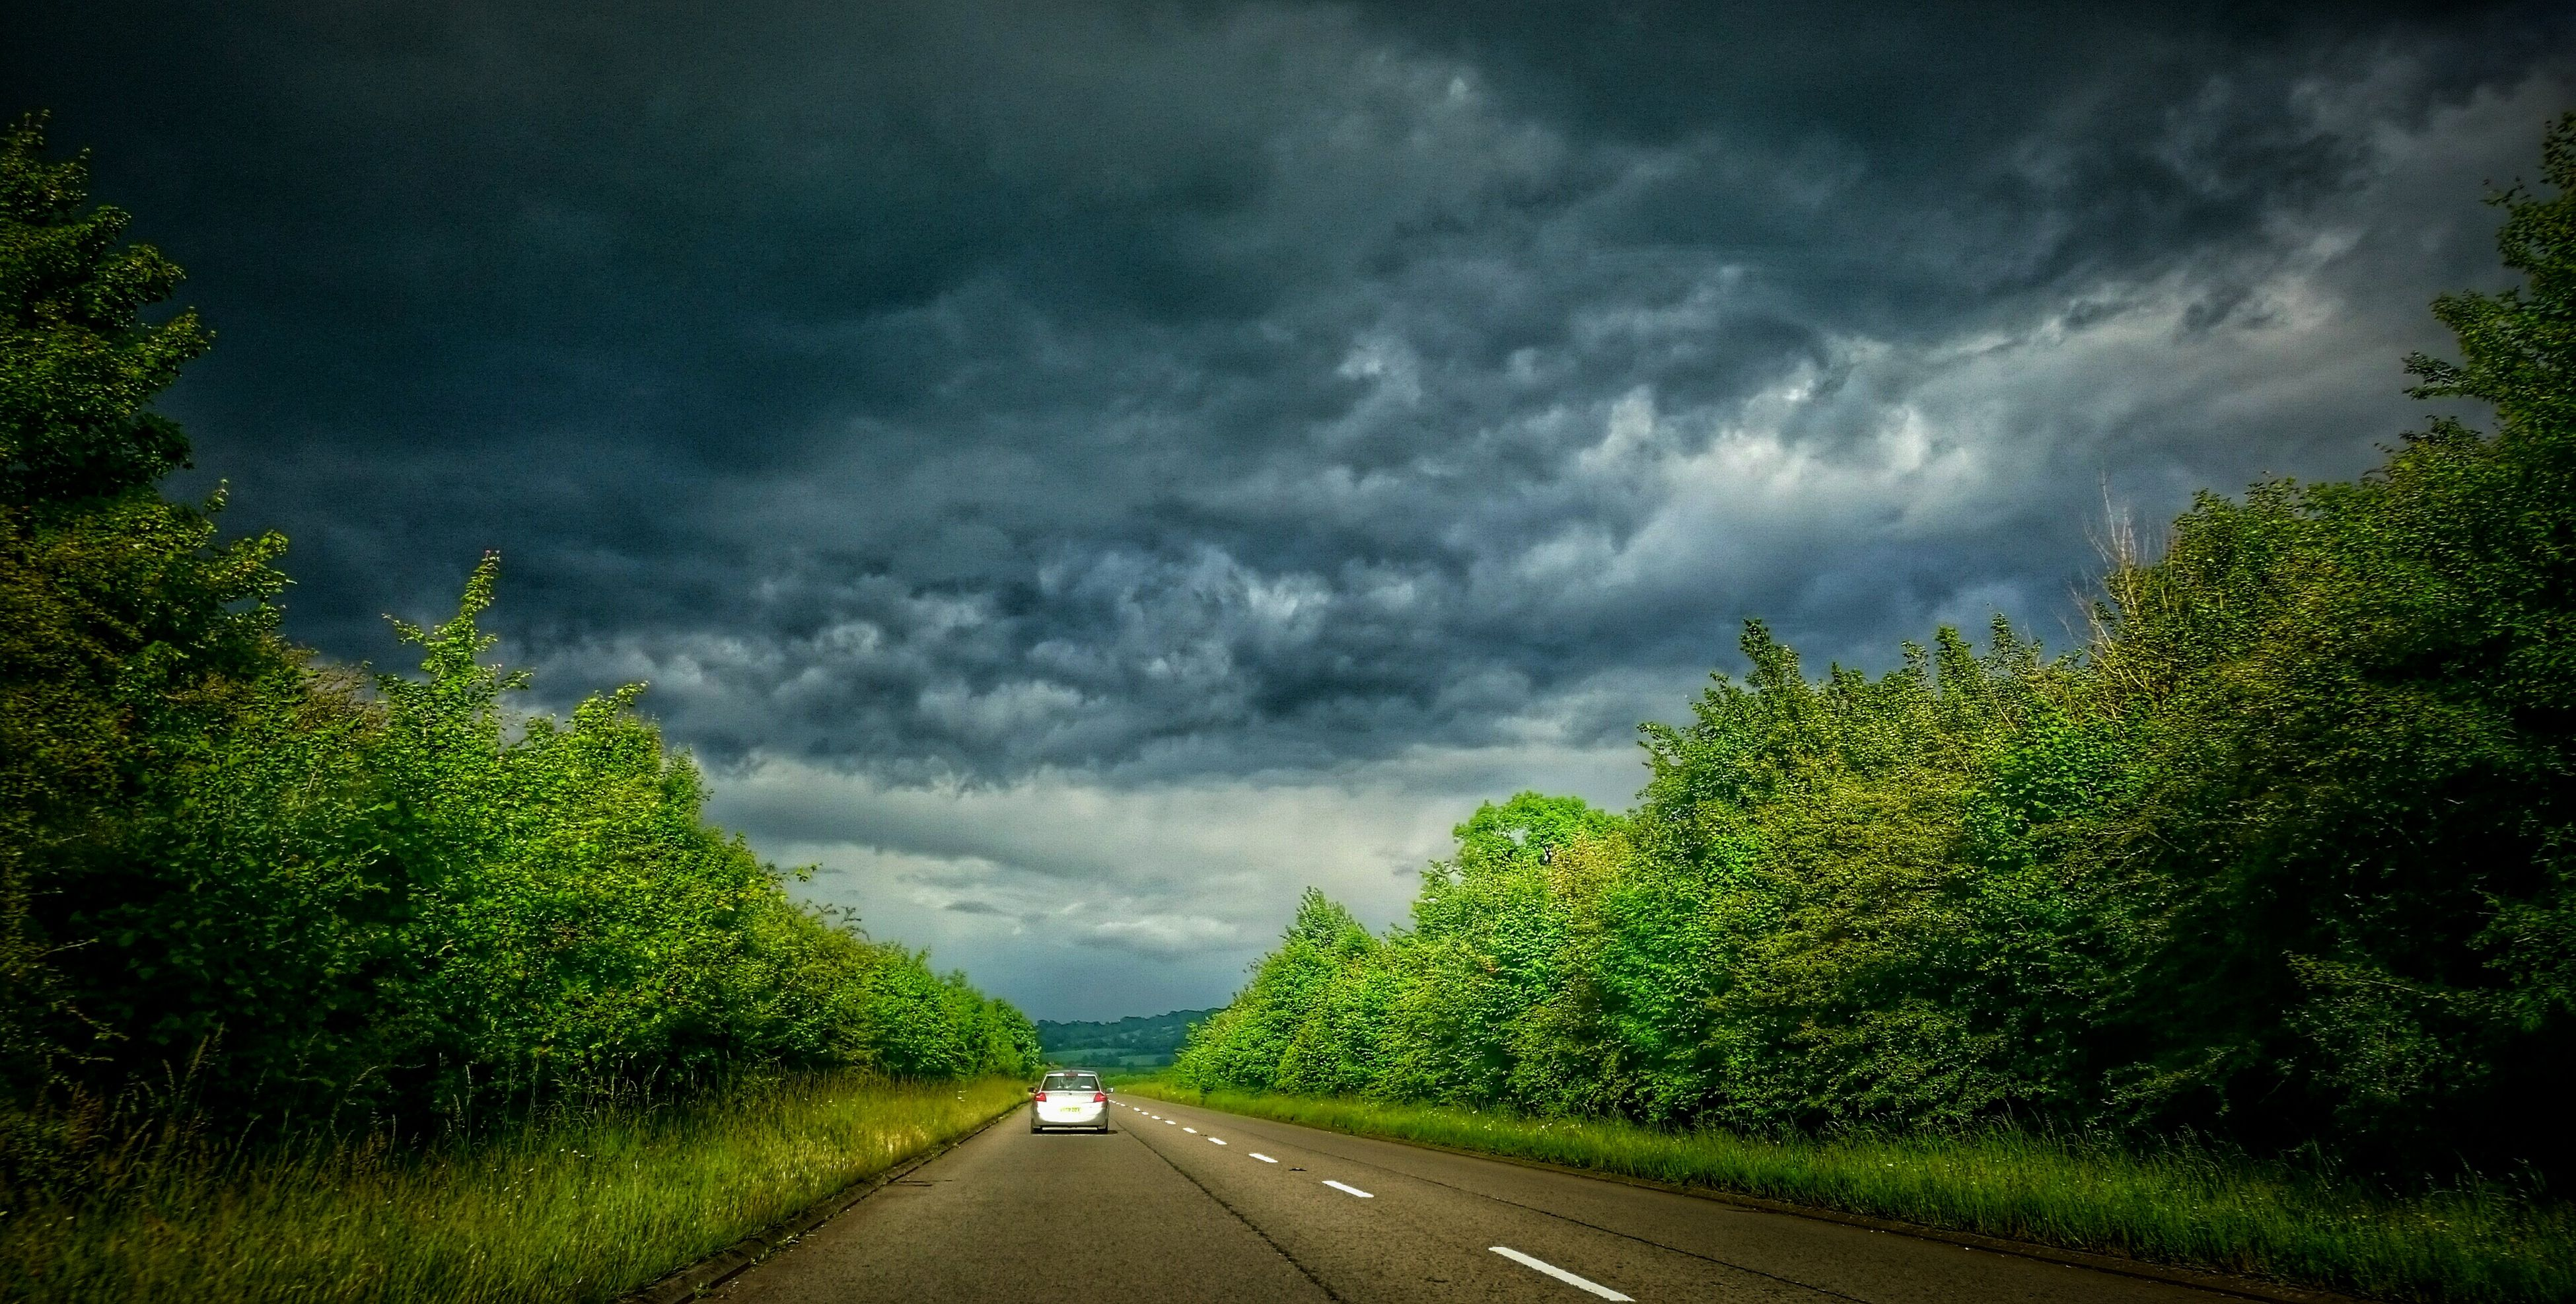 the way forward, transportation, road, sky, cloud - sky, diminishing perspective, cloudy, tree, vanishing point, road marking, country road, car, weather, cloud, storm cloud, land vehicle, nature, street, overcast, mode of transport